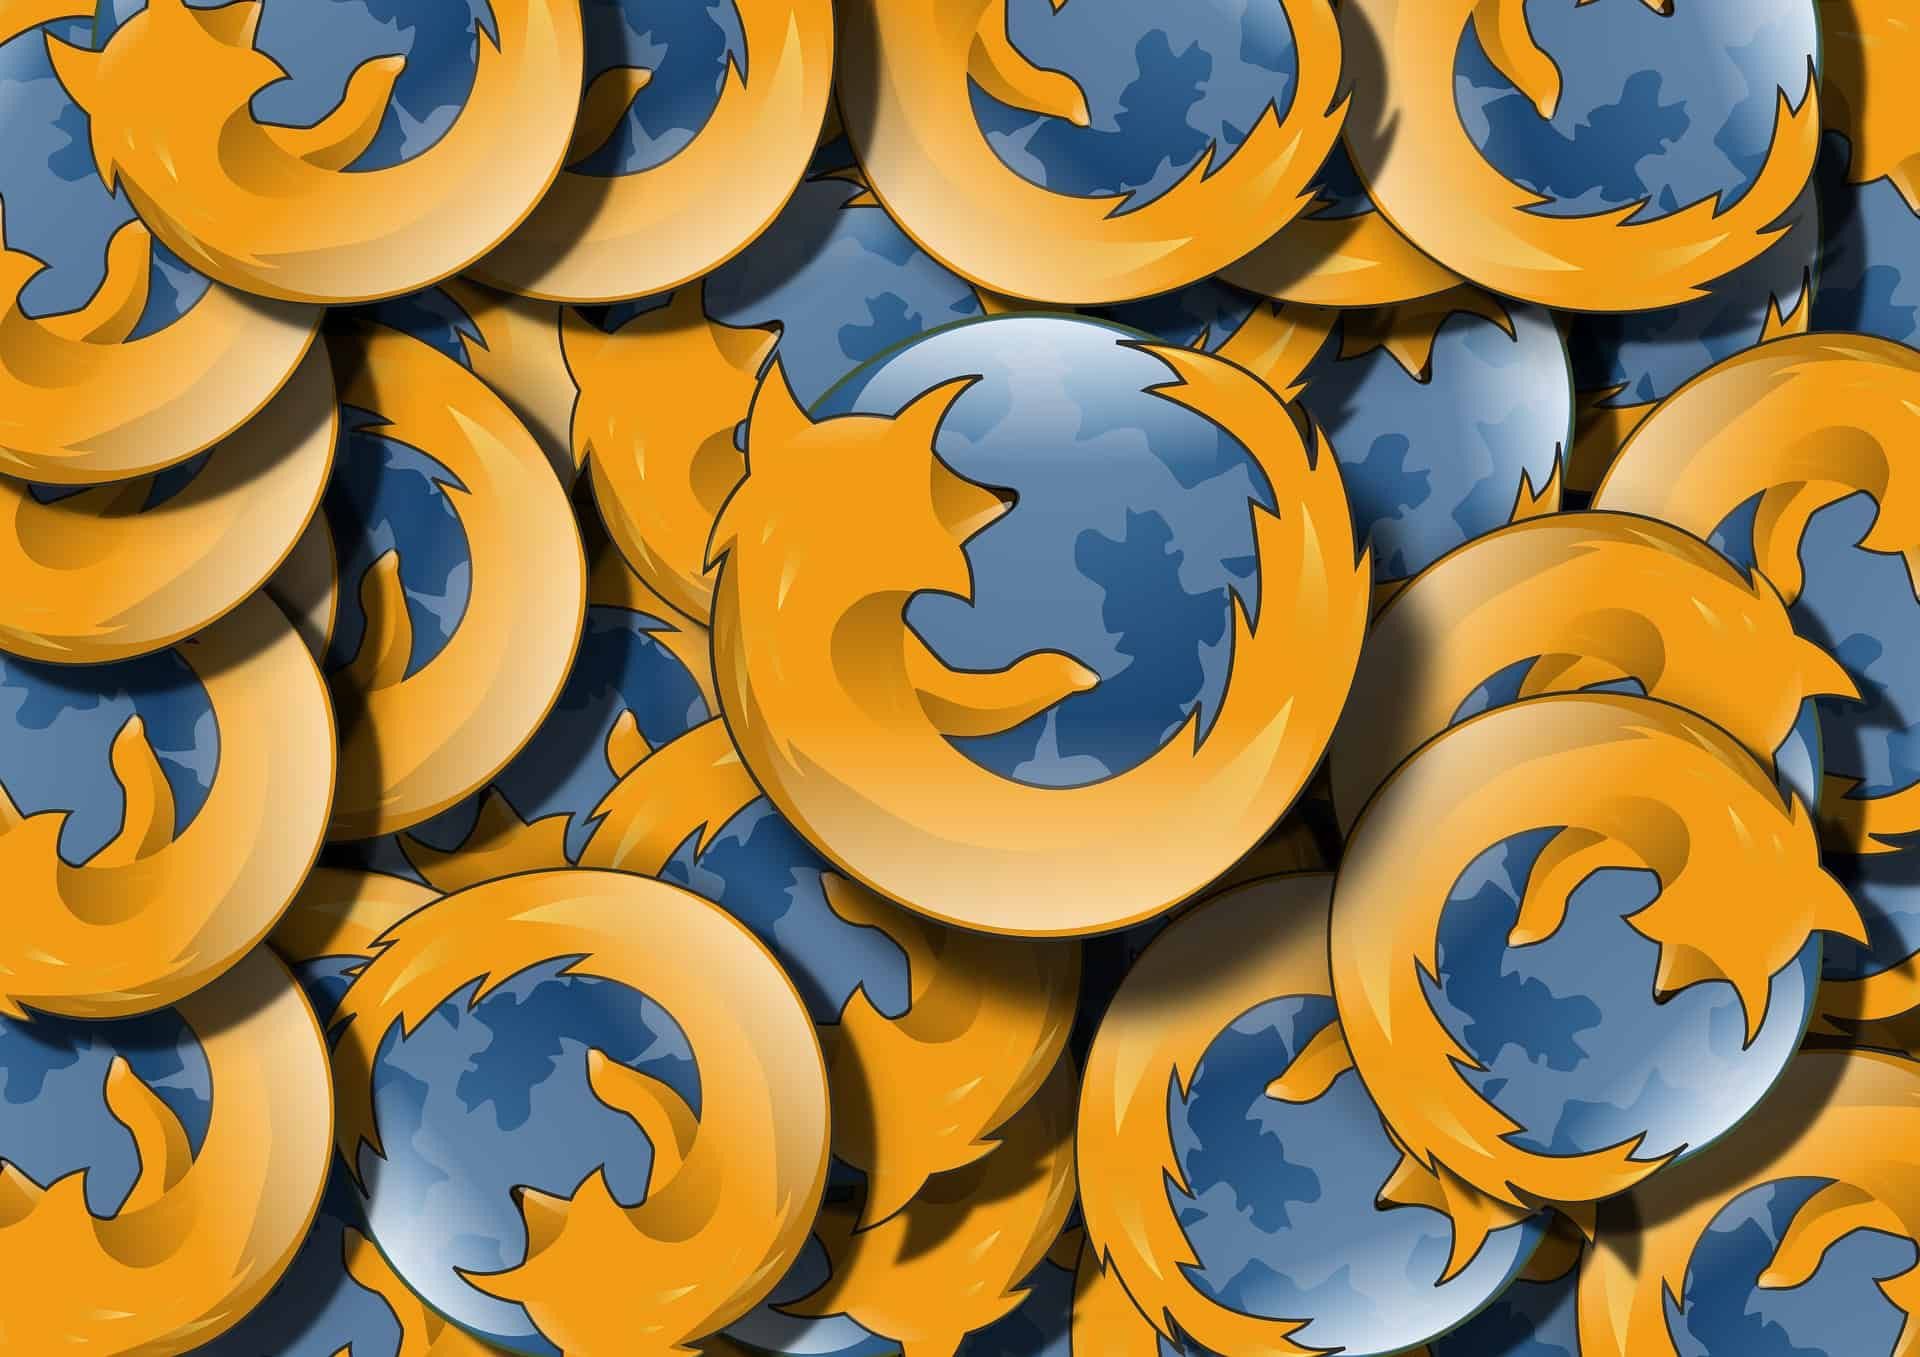 Reasons To Use Mozilla Firefox As A Default Browser